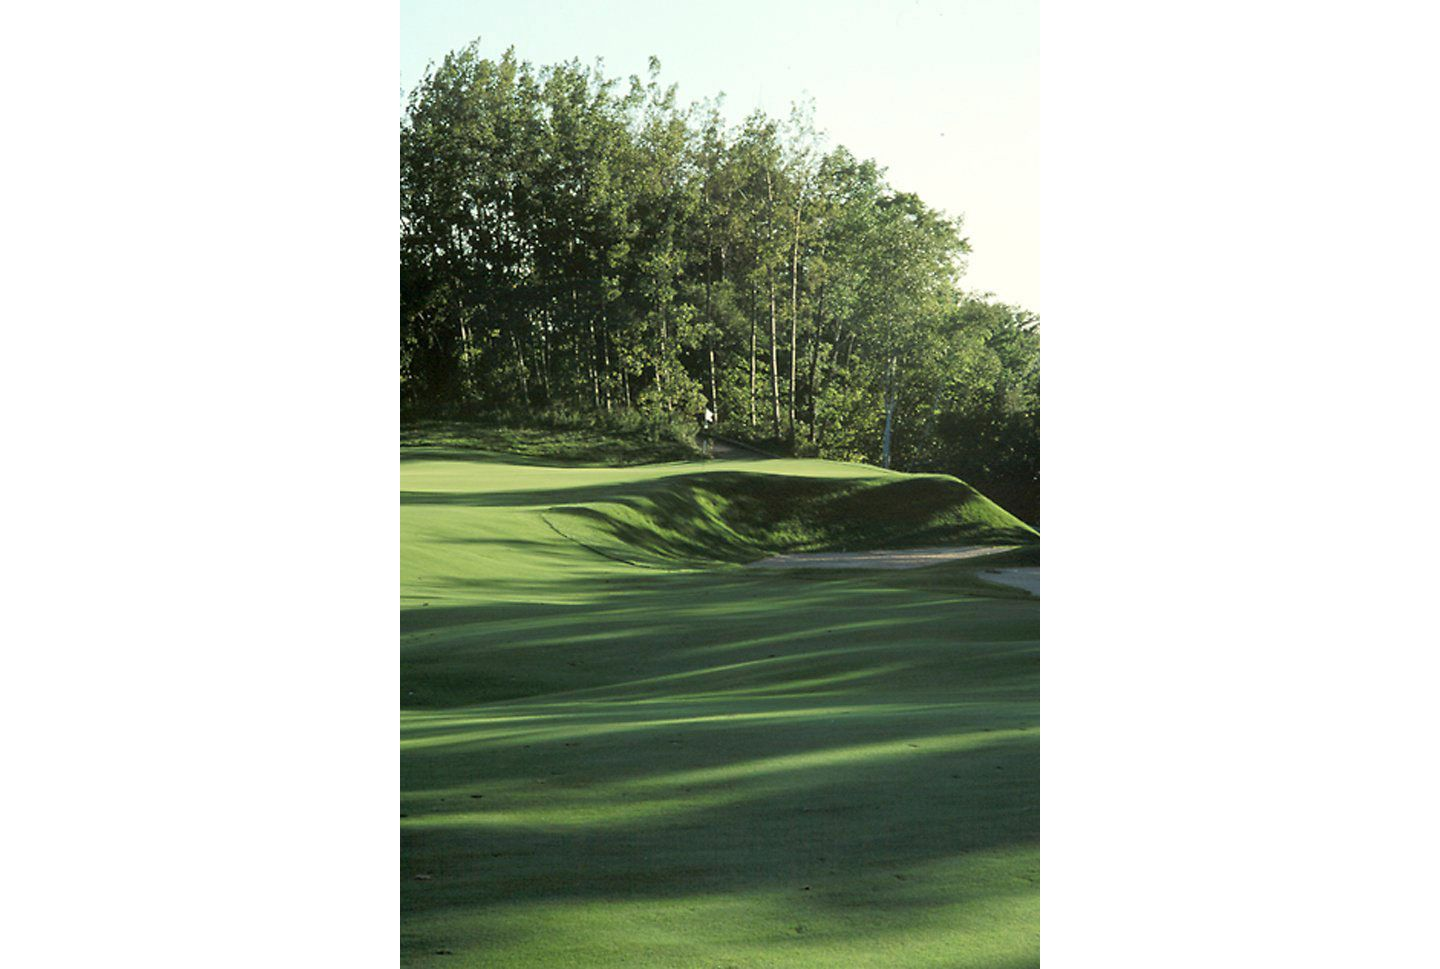 A view of the green of hole 7 on The River course.